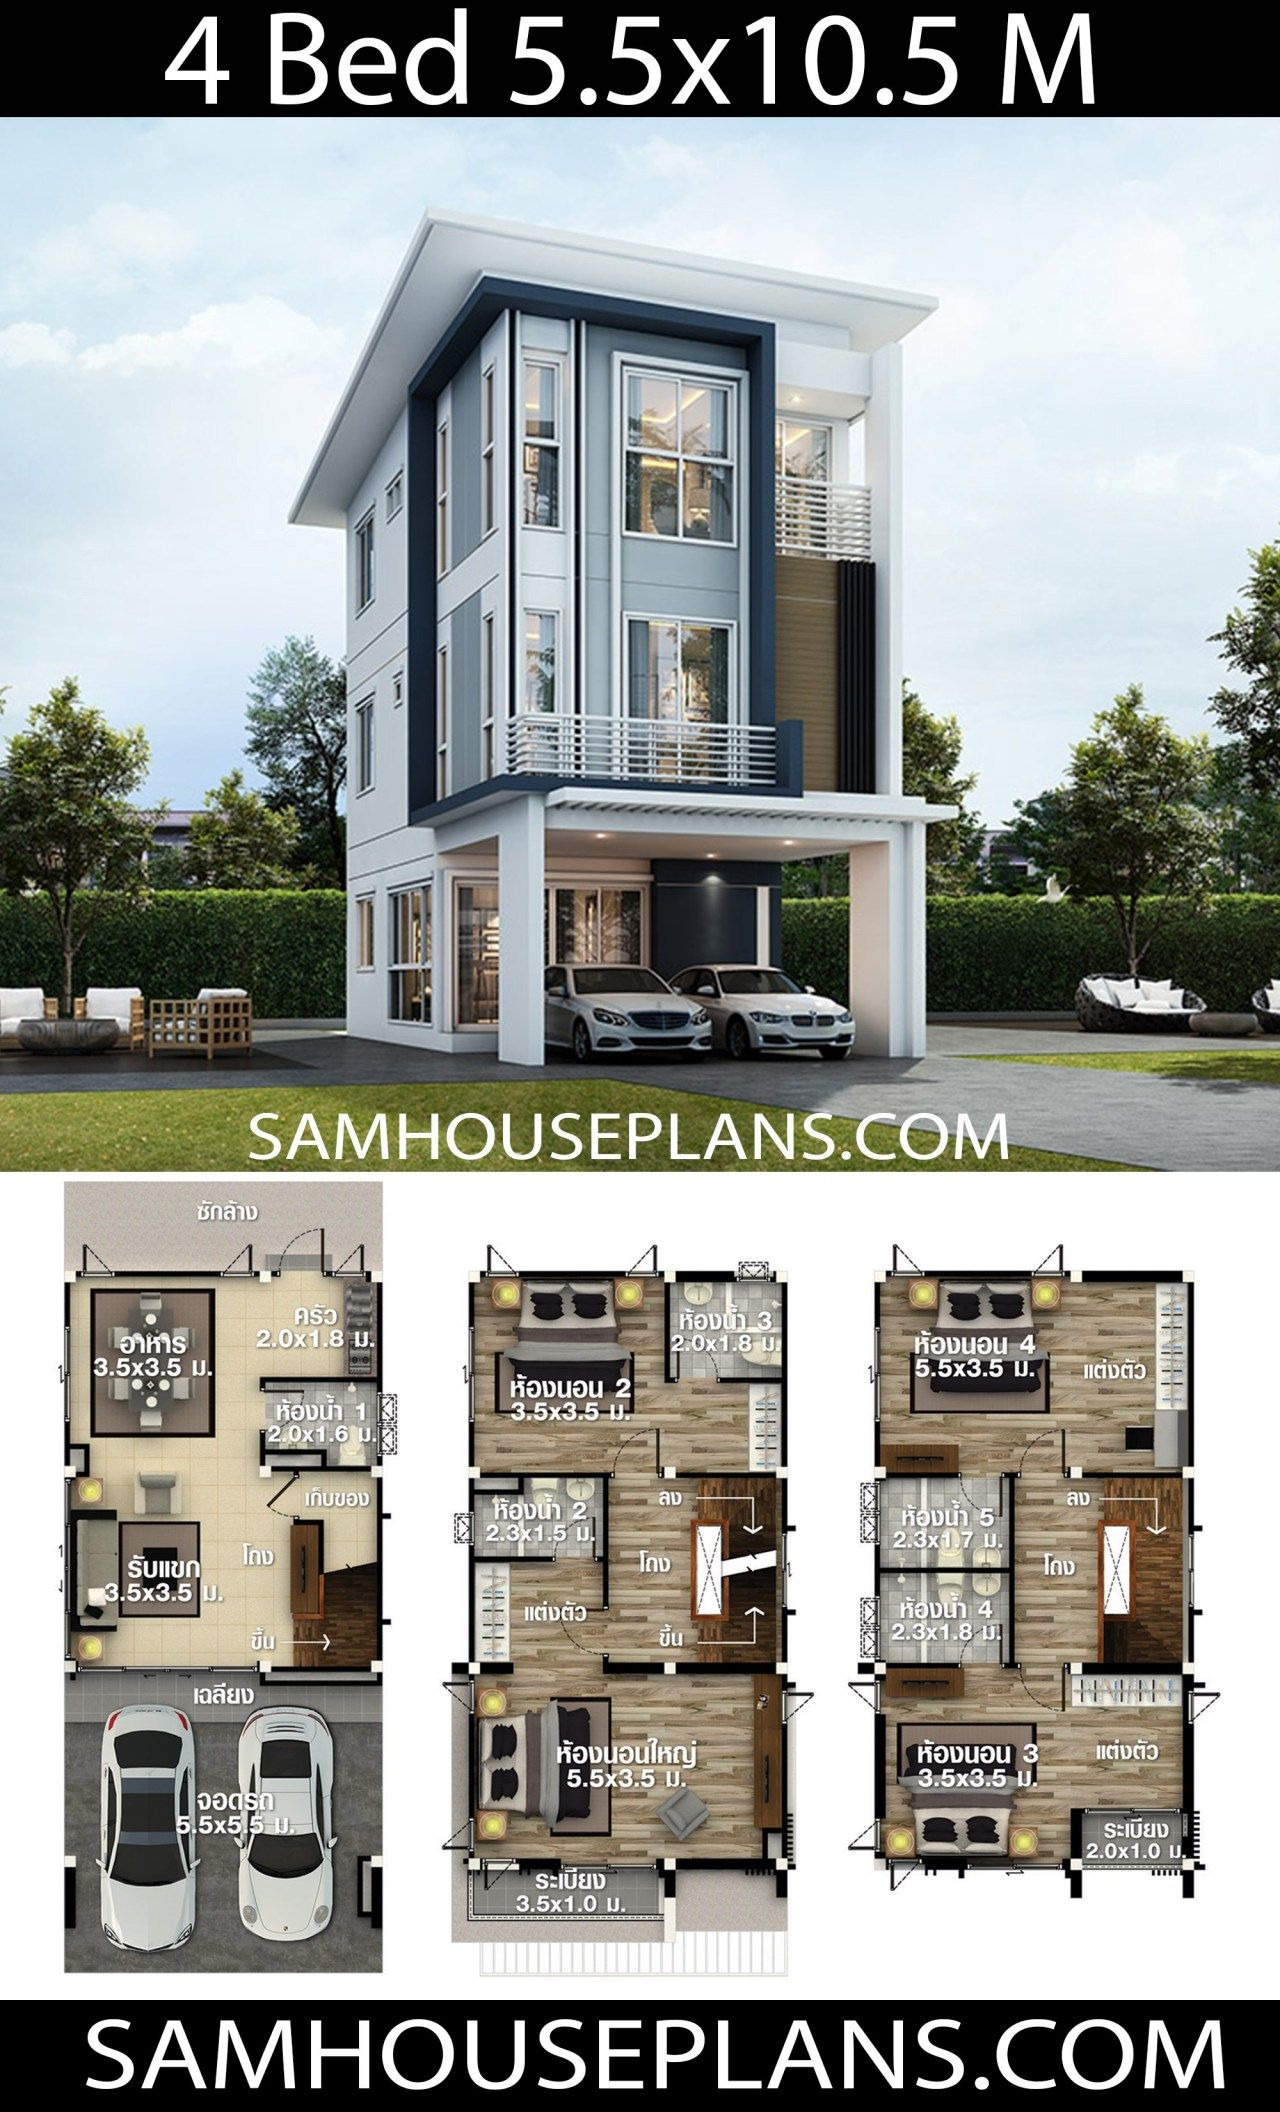 House Plans Idea 5.5x10.5 with 4 bedrooms | Model house ...